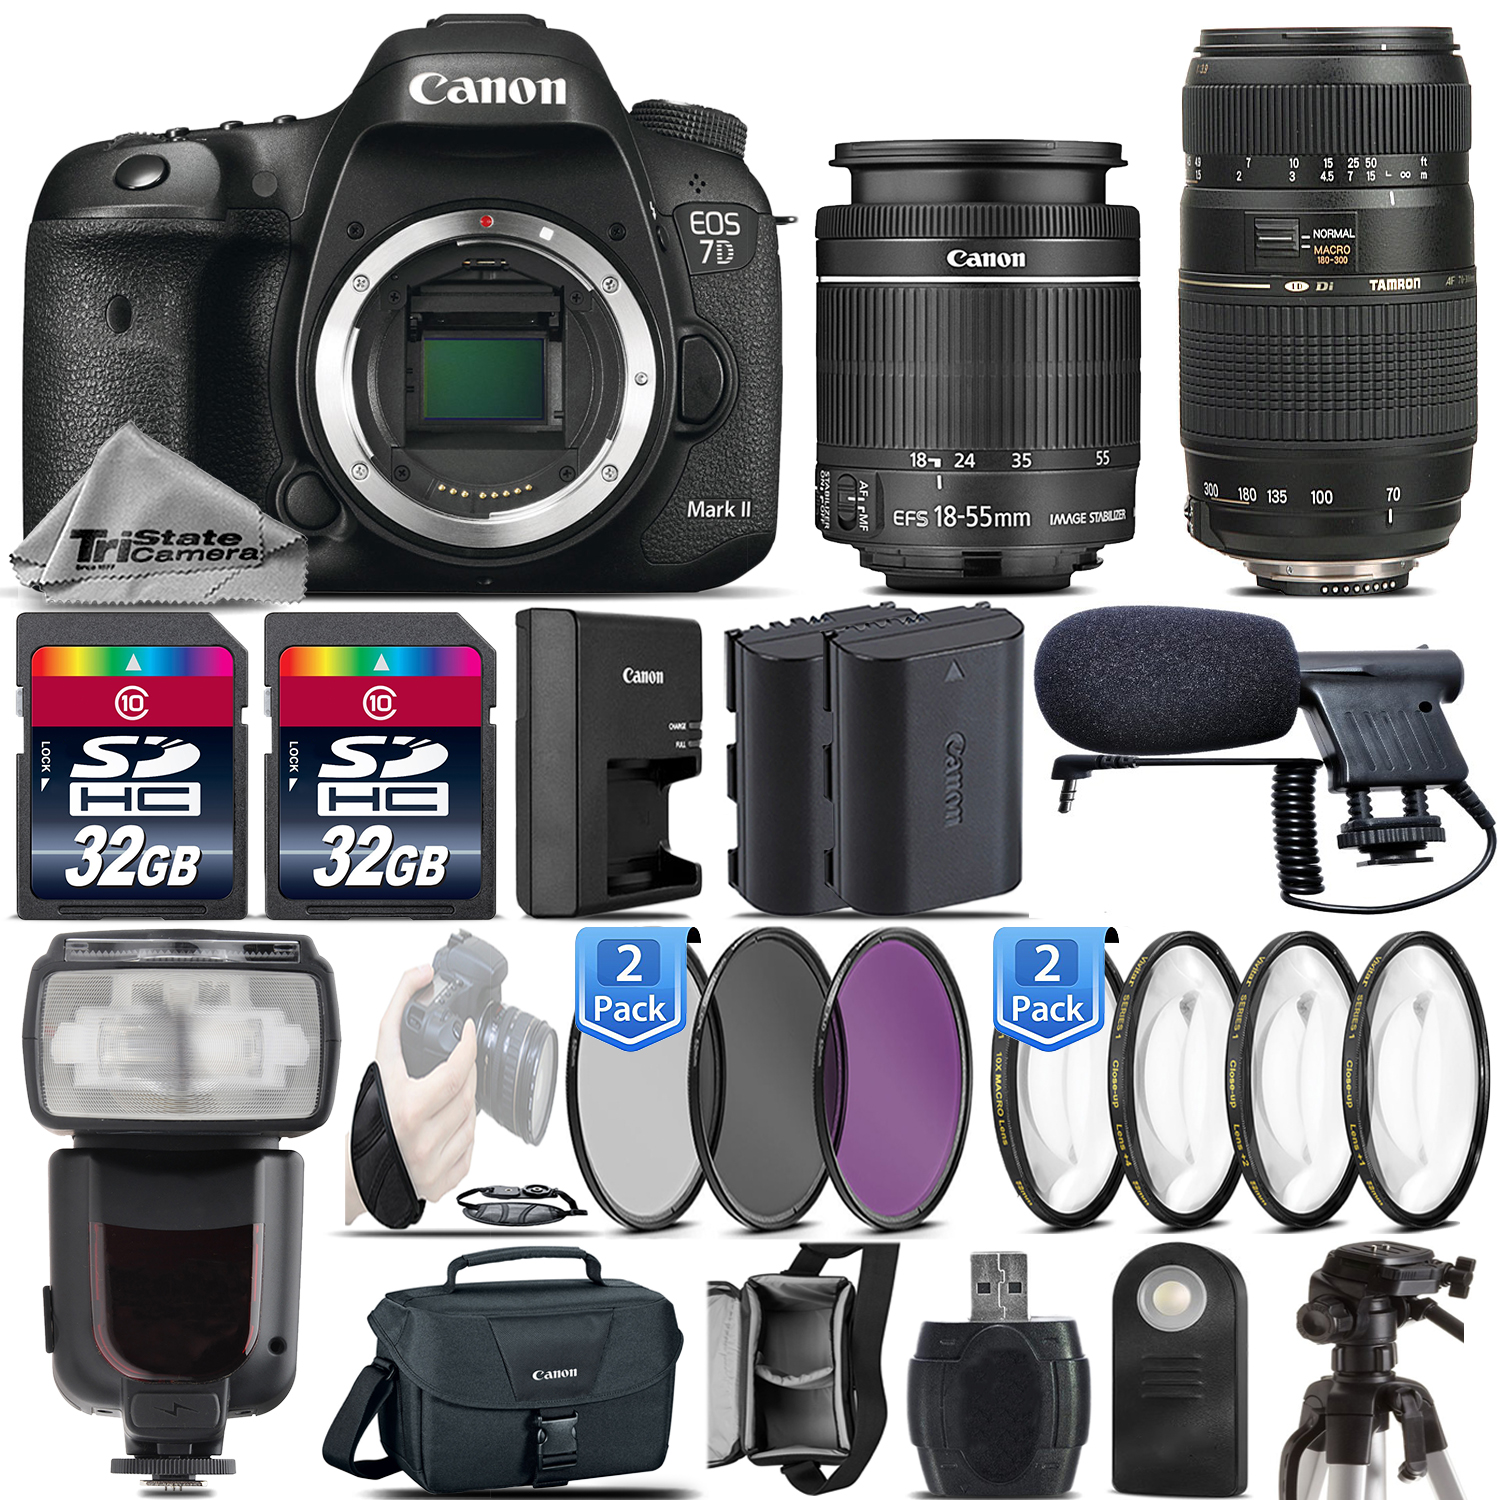 Canon EOS 7D Mark II DSLR Dual DIGIC 6 1080p Camera + 18-55mm IS STM + 70-300mm